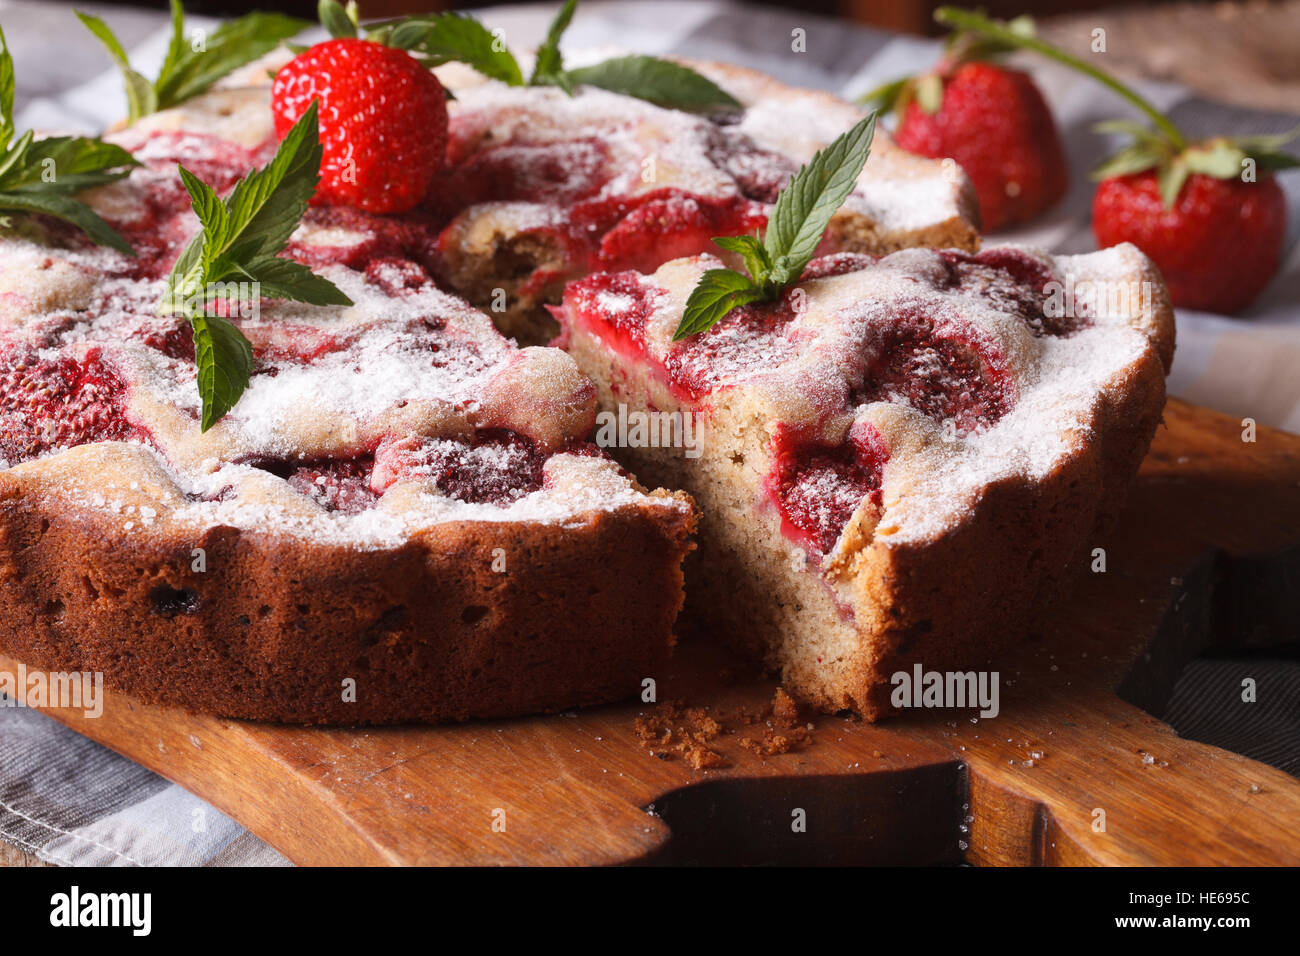 Home sliced strawberry pie with mint on a cutting board macro. Horizontal Selective Focus - Stock Image